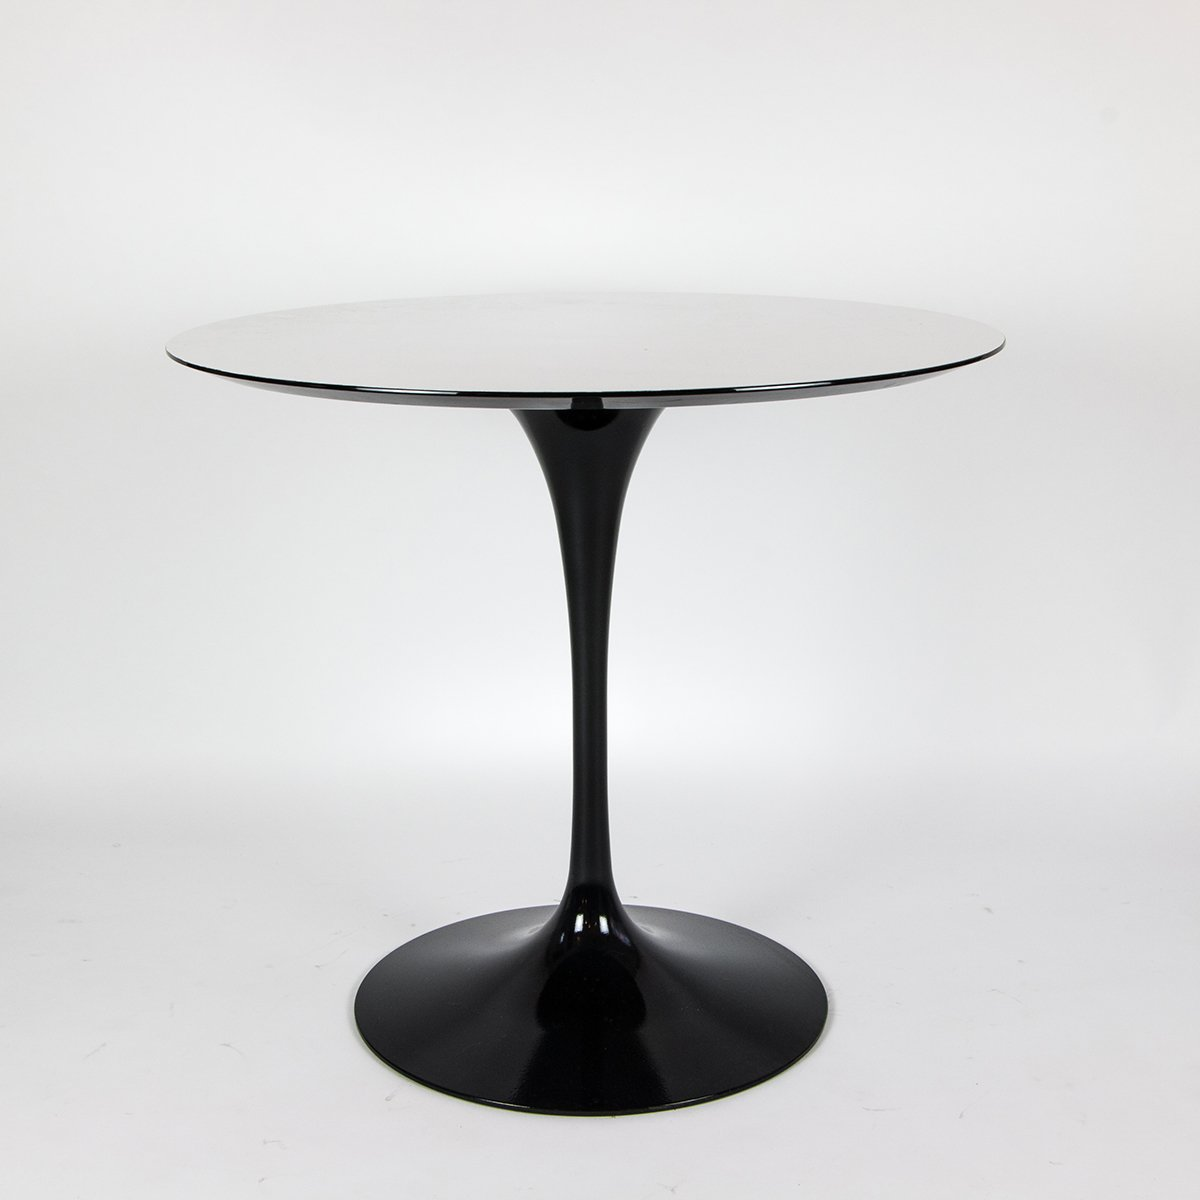 vintage tulip table by eero saarinen for knoll for sale at pamono. Black Bedroom Furniture Sets. Home Design Ideas